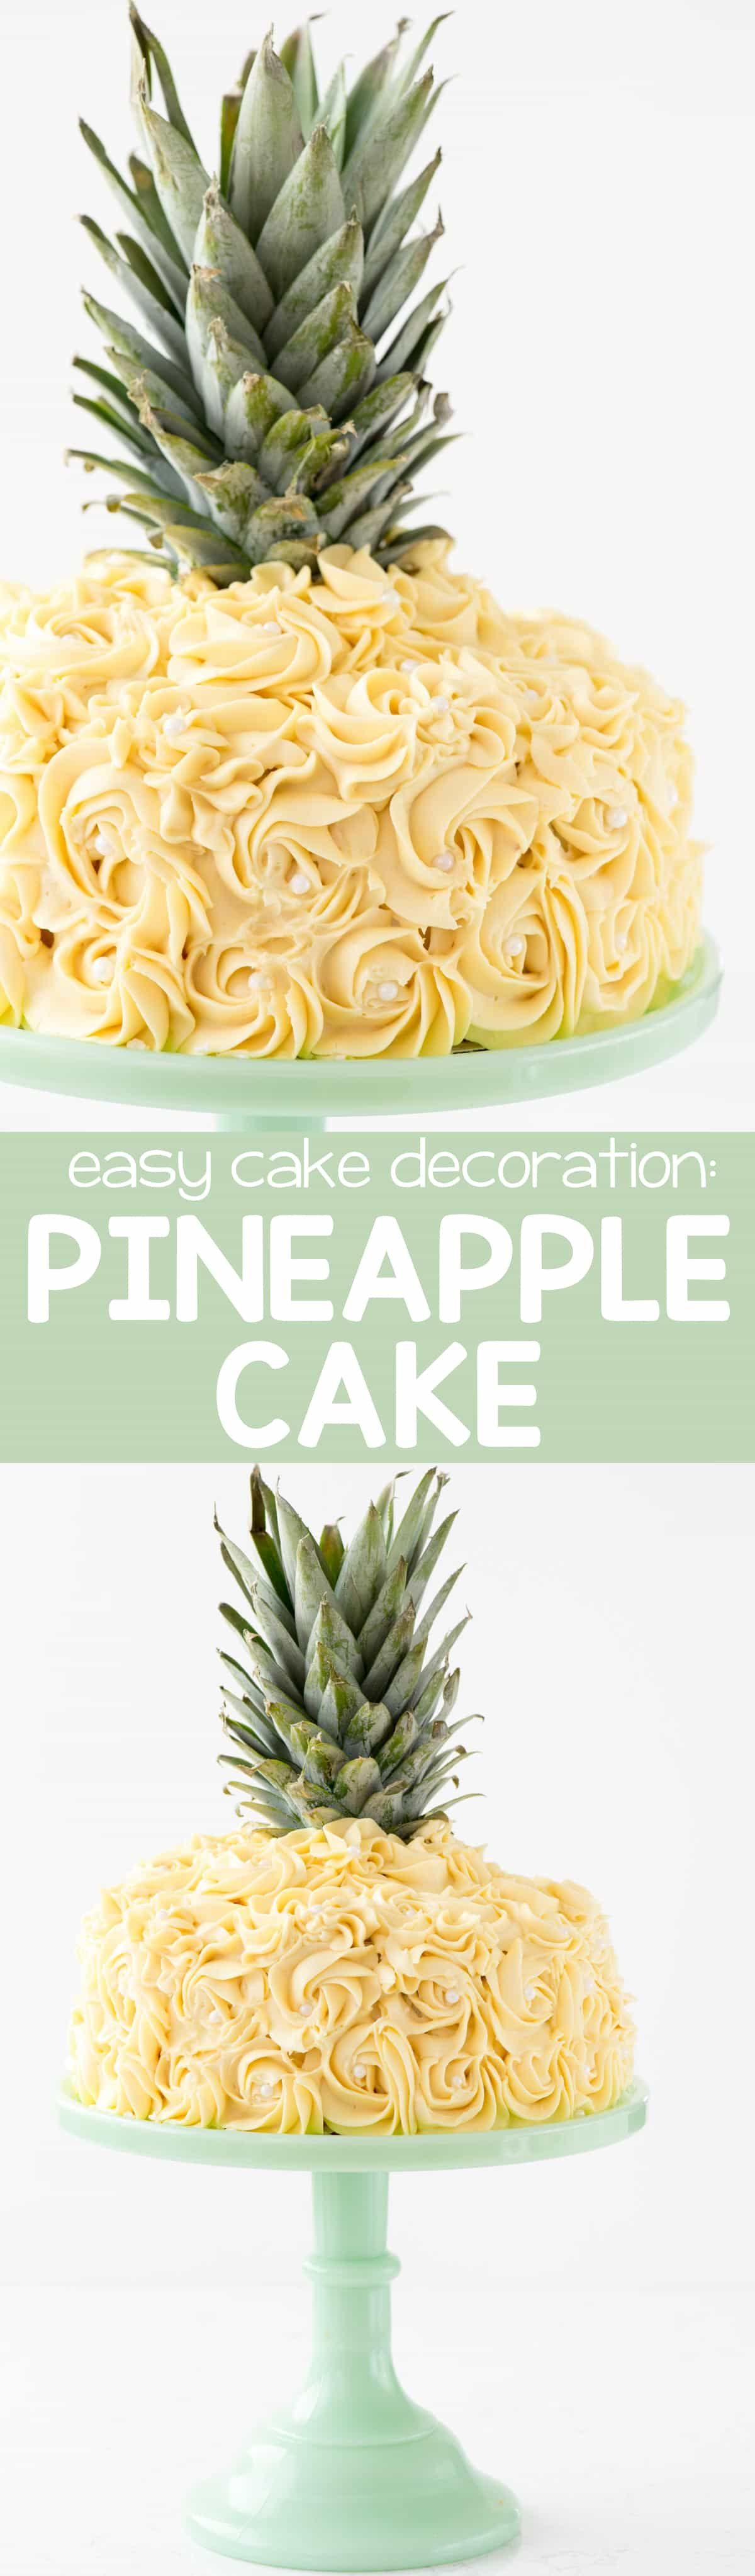 Pineapple Cake Decoration Recipe In 2018 Desserts Pinterest